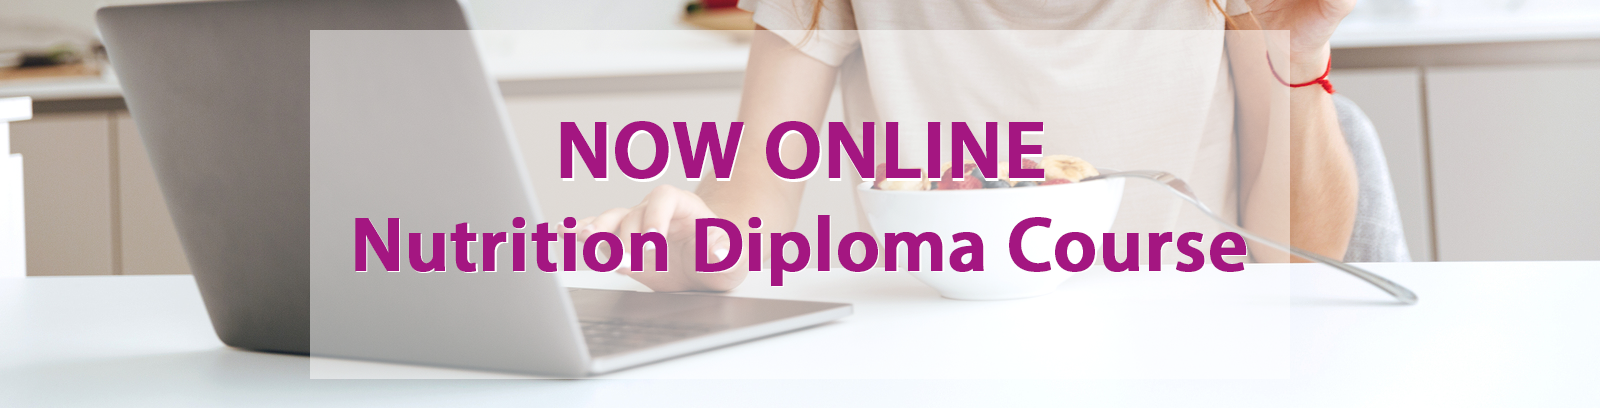 online-courses-email-header - CNM - Diploma Courses in